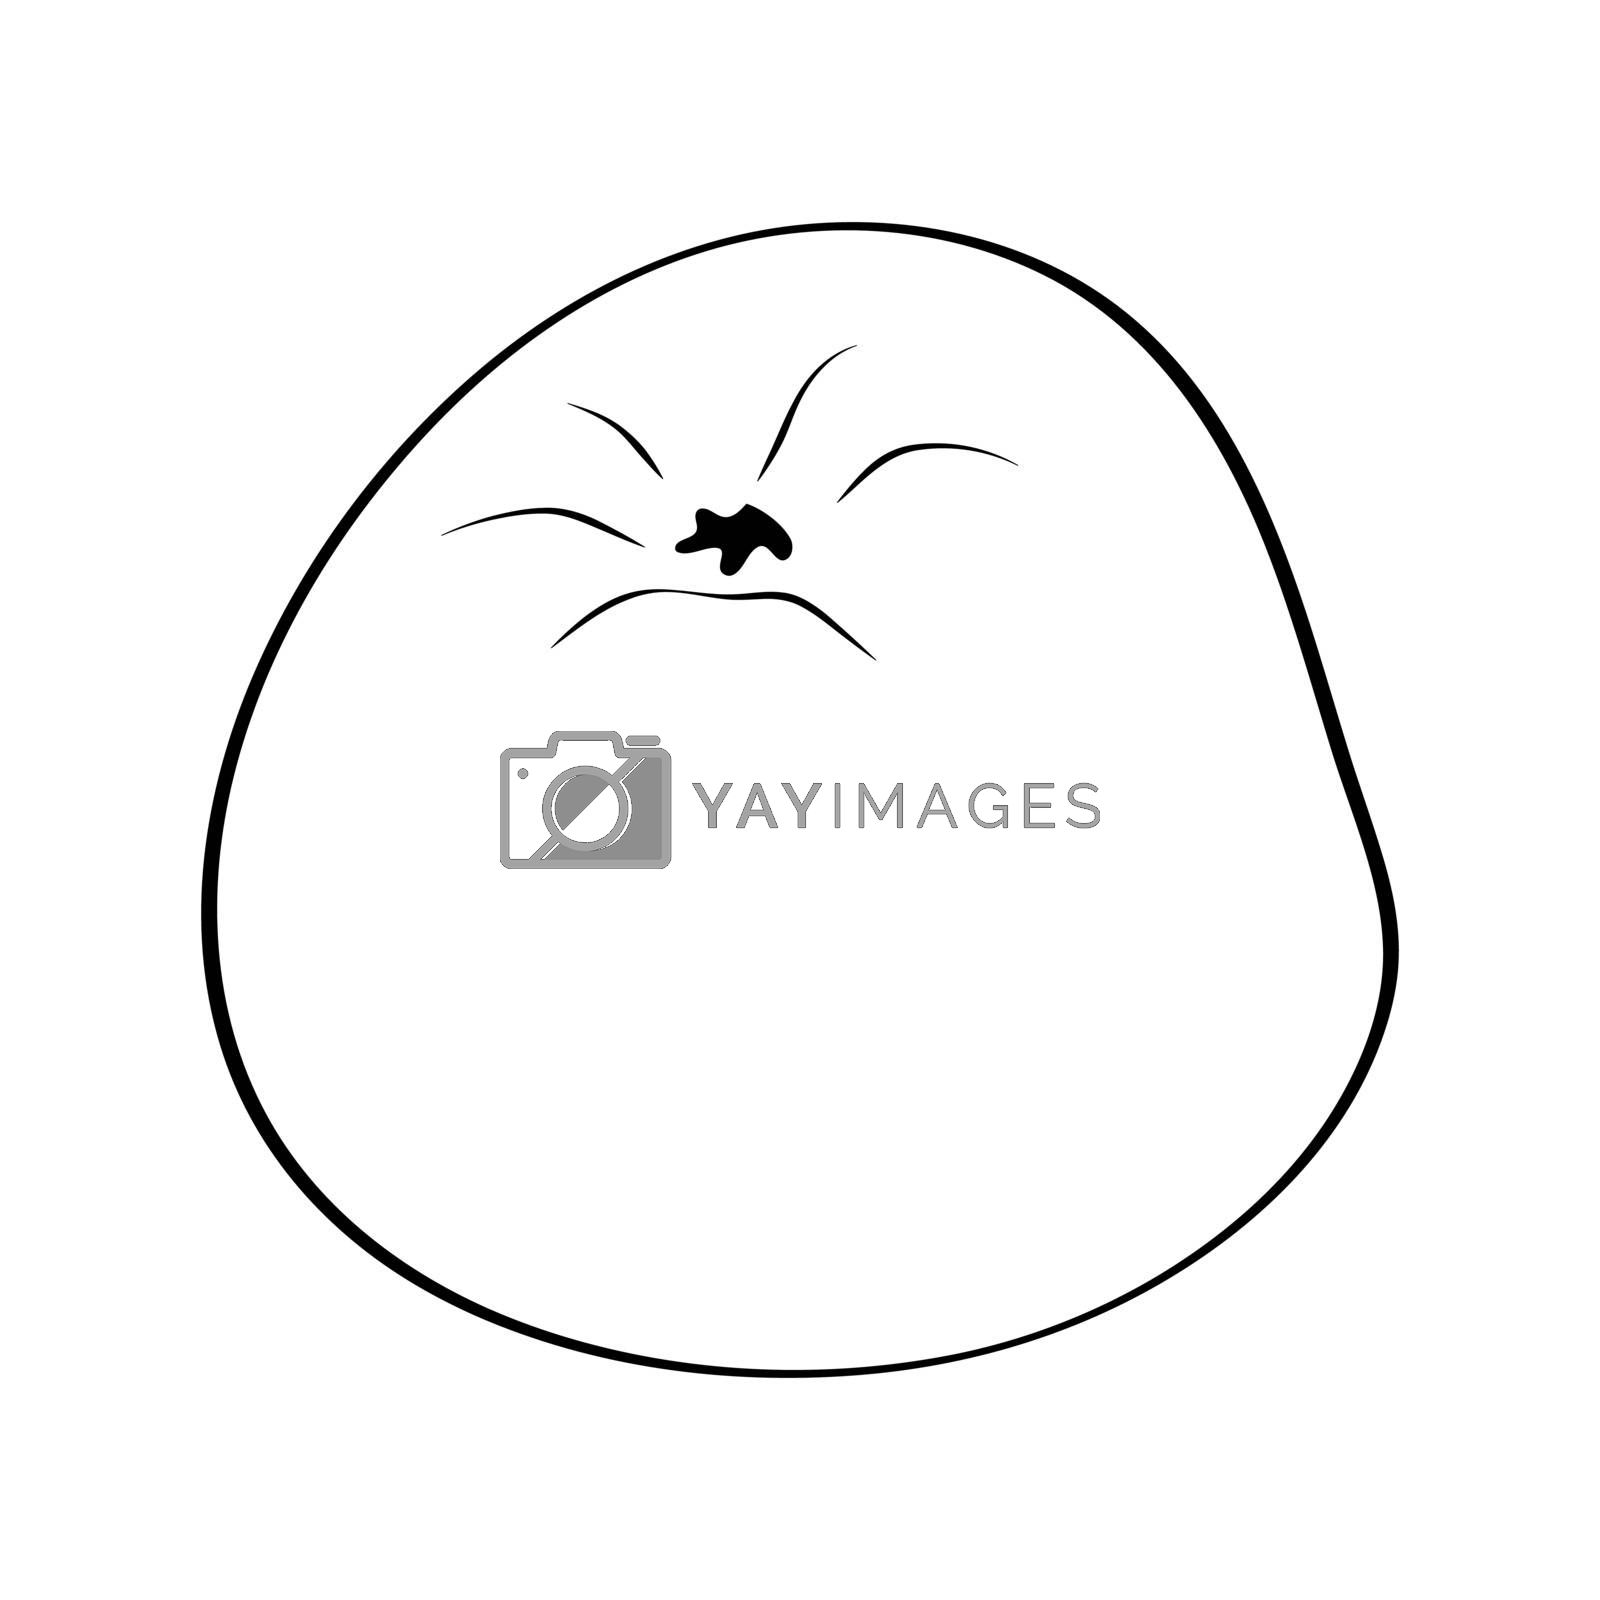 Apple. Hand drawn doodle icon. Vector black and white illustration isolated on white background. Decoration for greeting cards, posters, patches, prints for clothes, emblems.